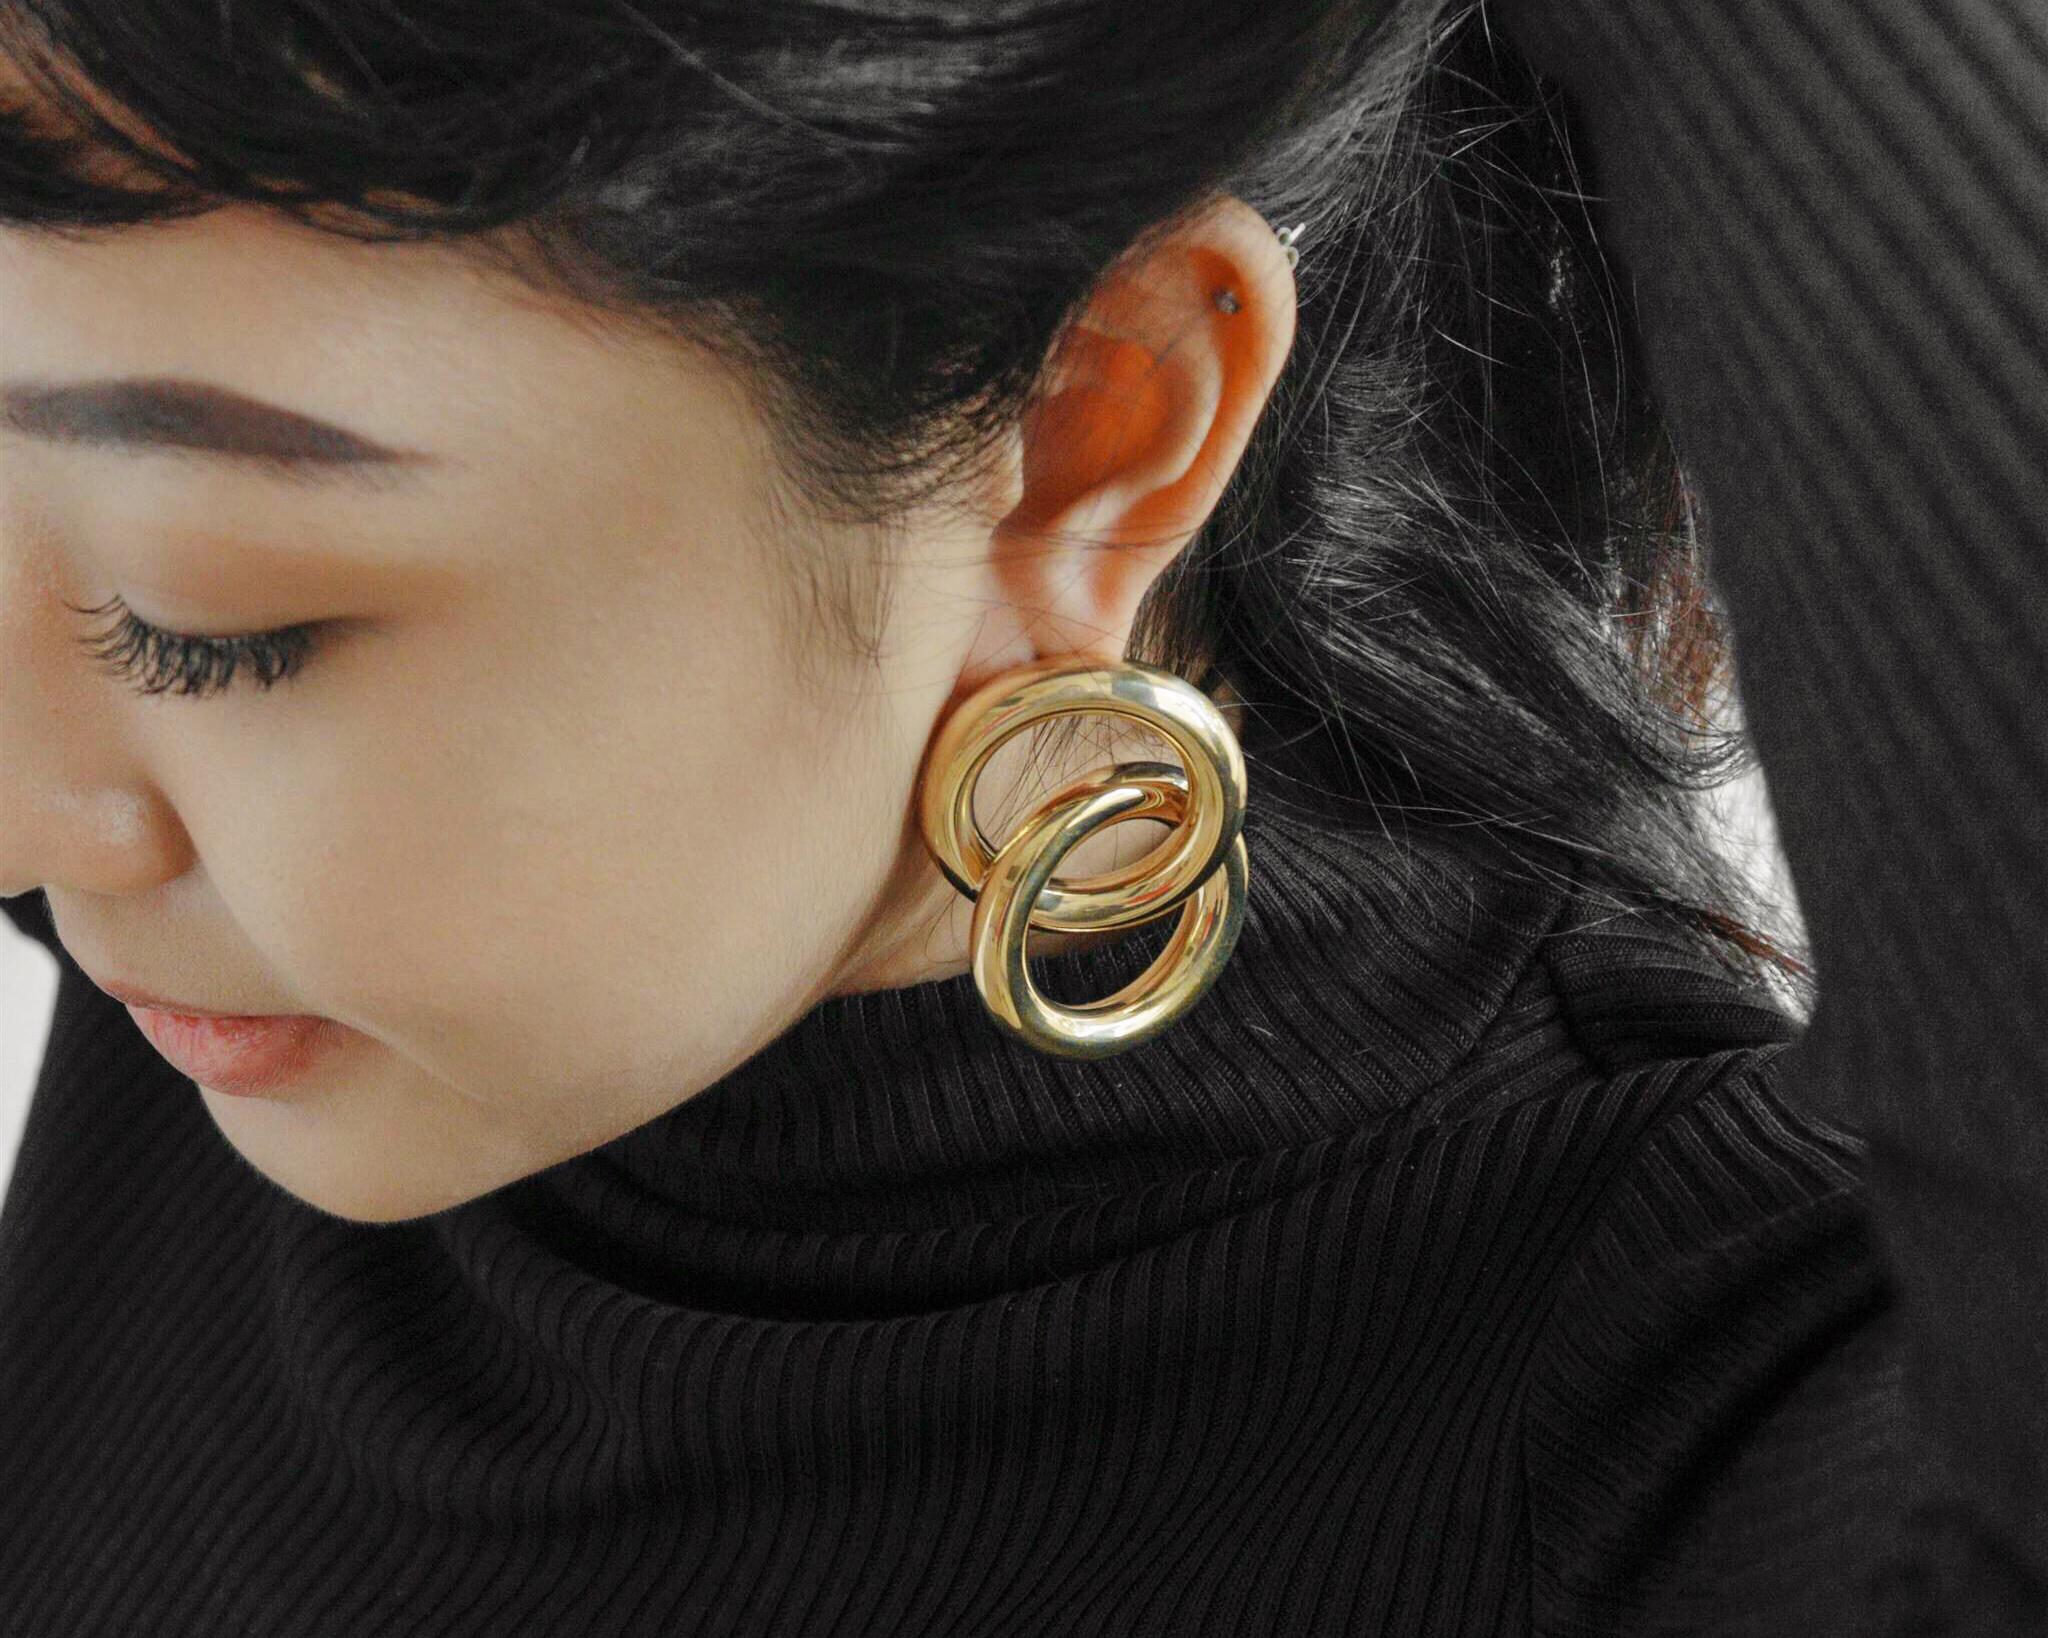 Laura Lombardi Interlock Gold-Tone Earrings, $169.42, from net-a-porter.com